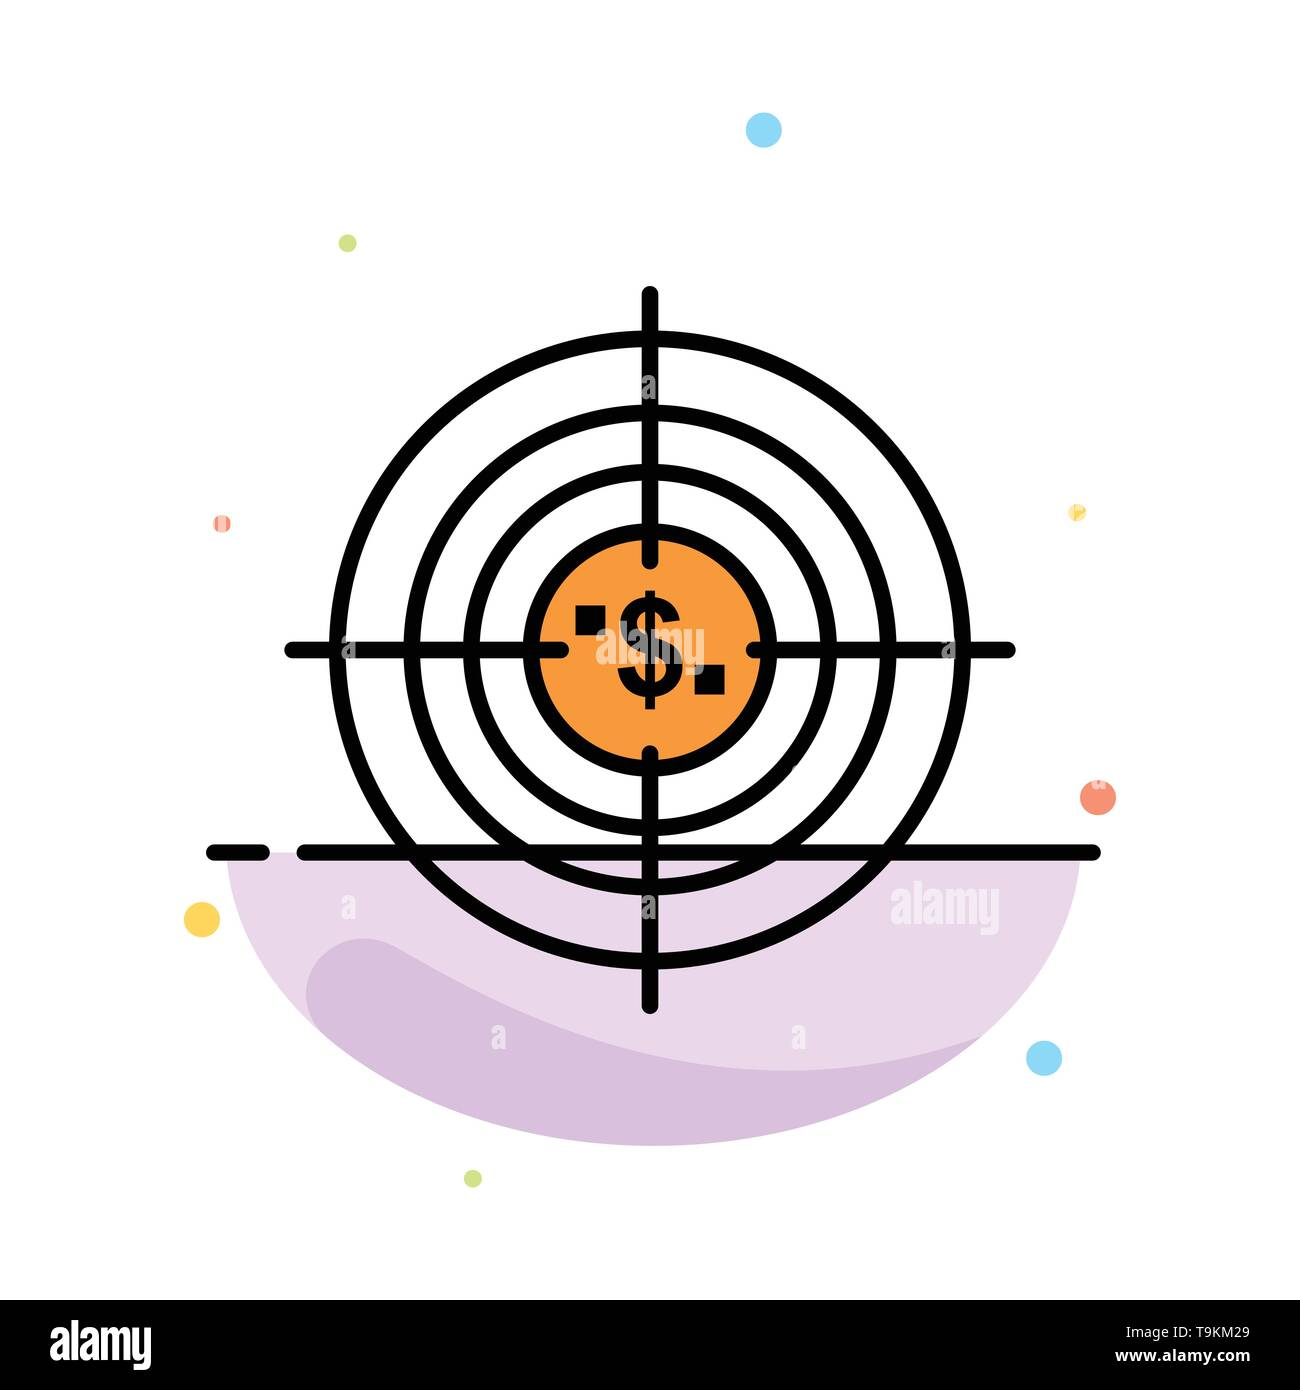 Target, Aim, Business, Cash, Financial, Funds, Hunting, Money Abstract Flat Color Icon Template - Stock Image